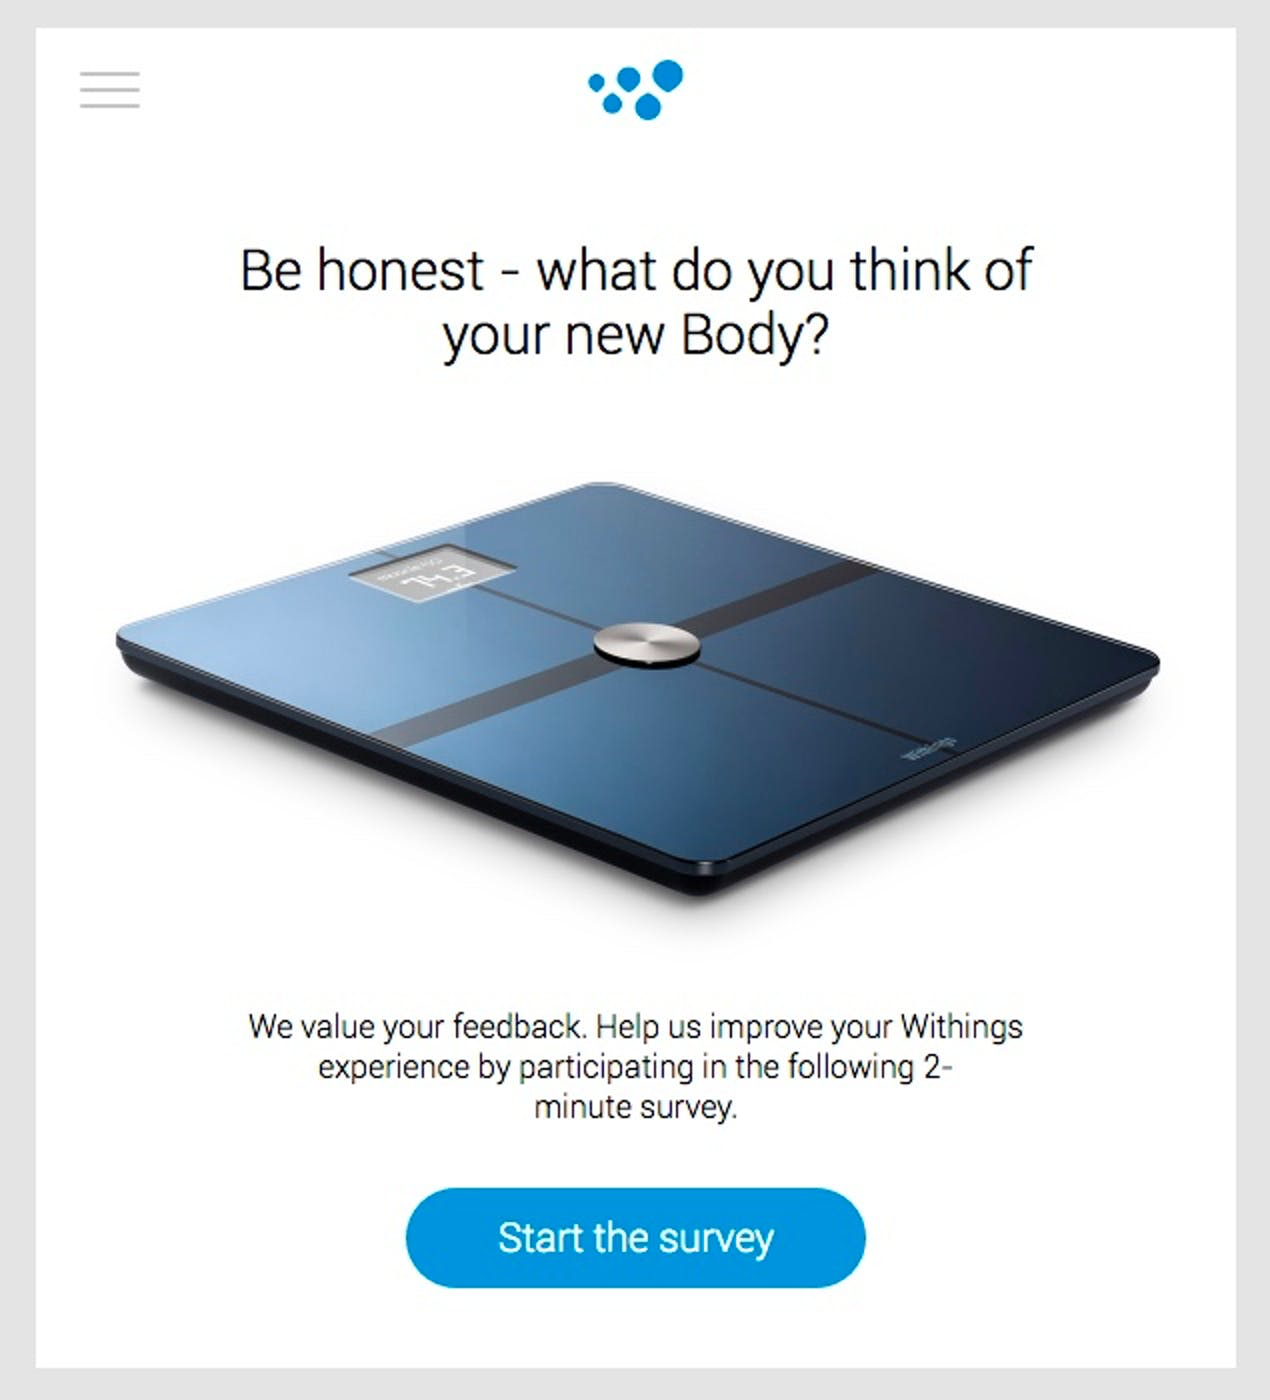 withings customer survey example